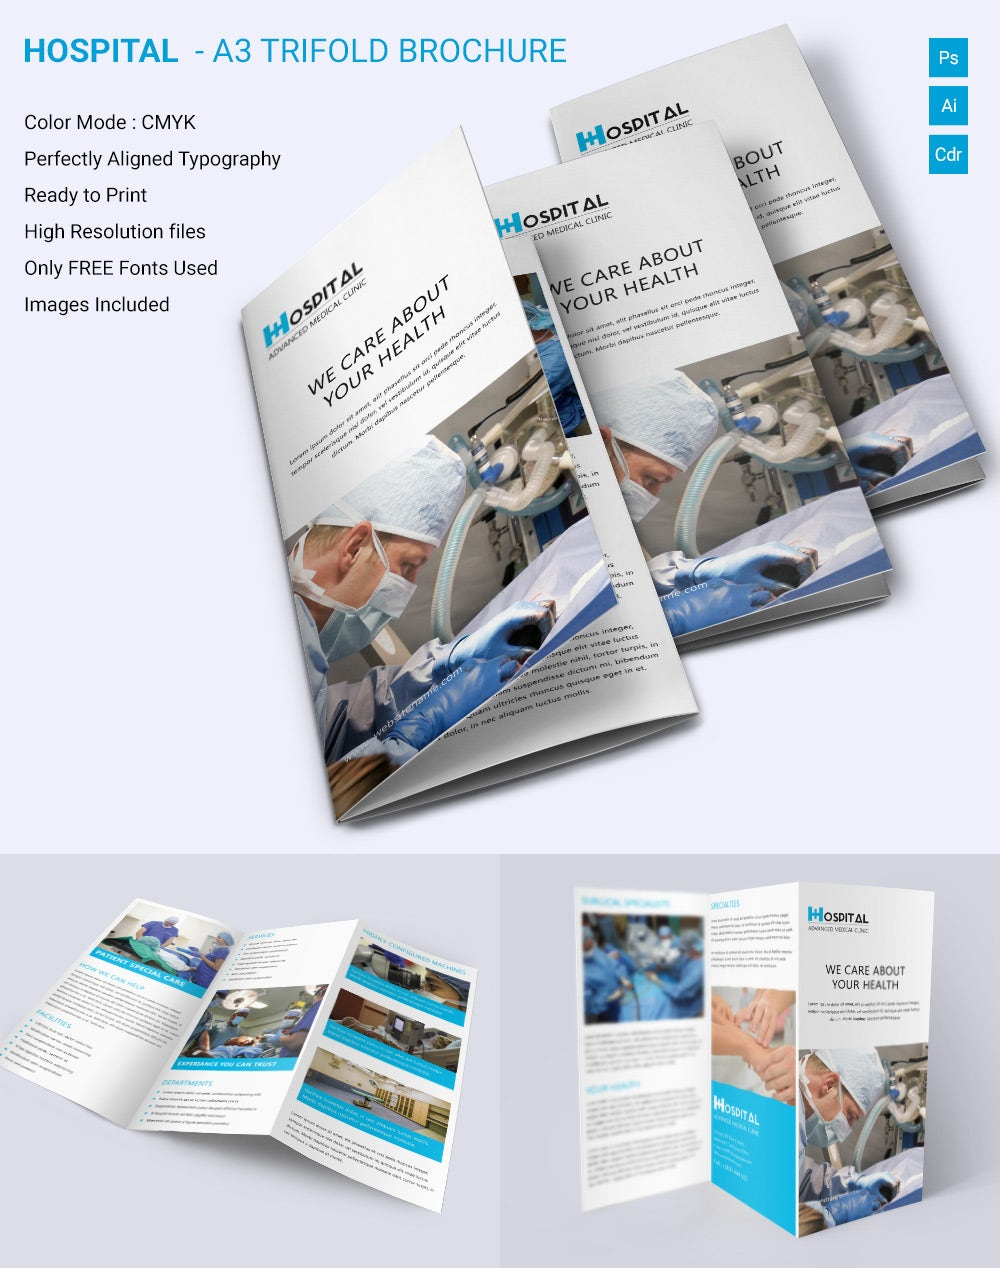 Medical brochure template 39 free psd ai vector eps for Tri fold brochure templates